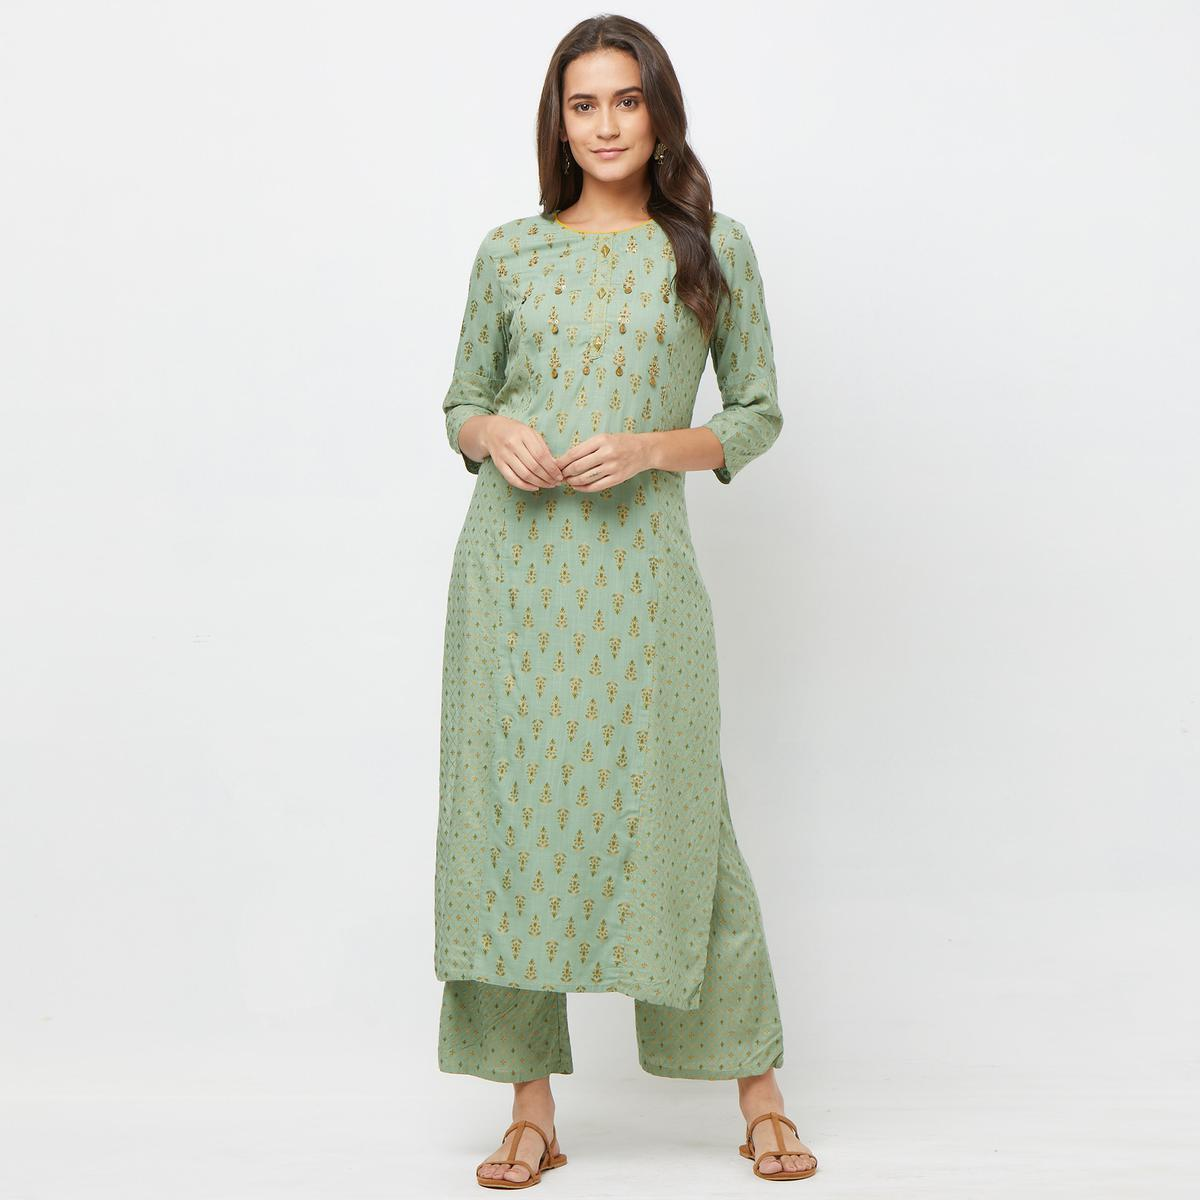 Capricious Pastel Green Colored Partywear Embroidered Cotton Kurti-Palazzo Set